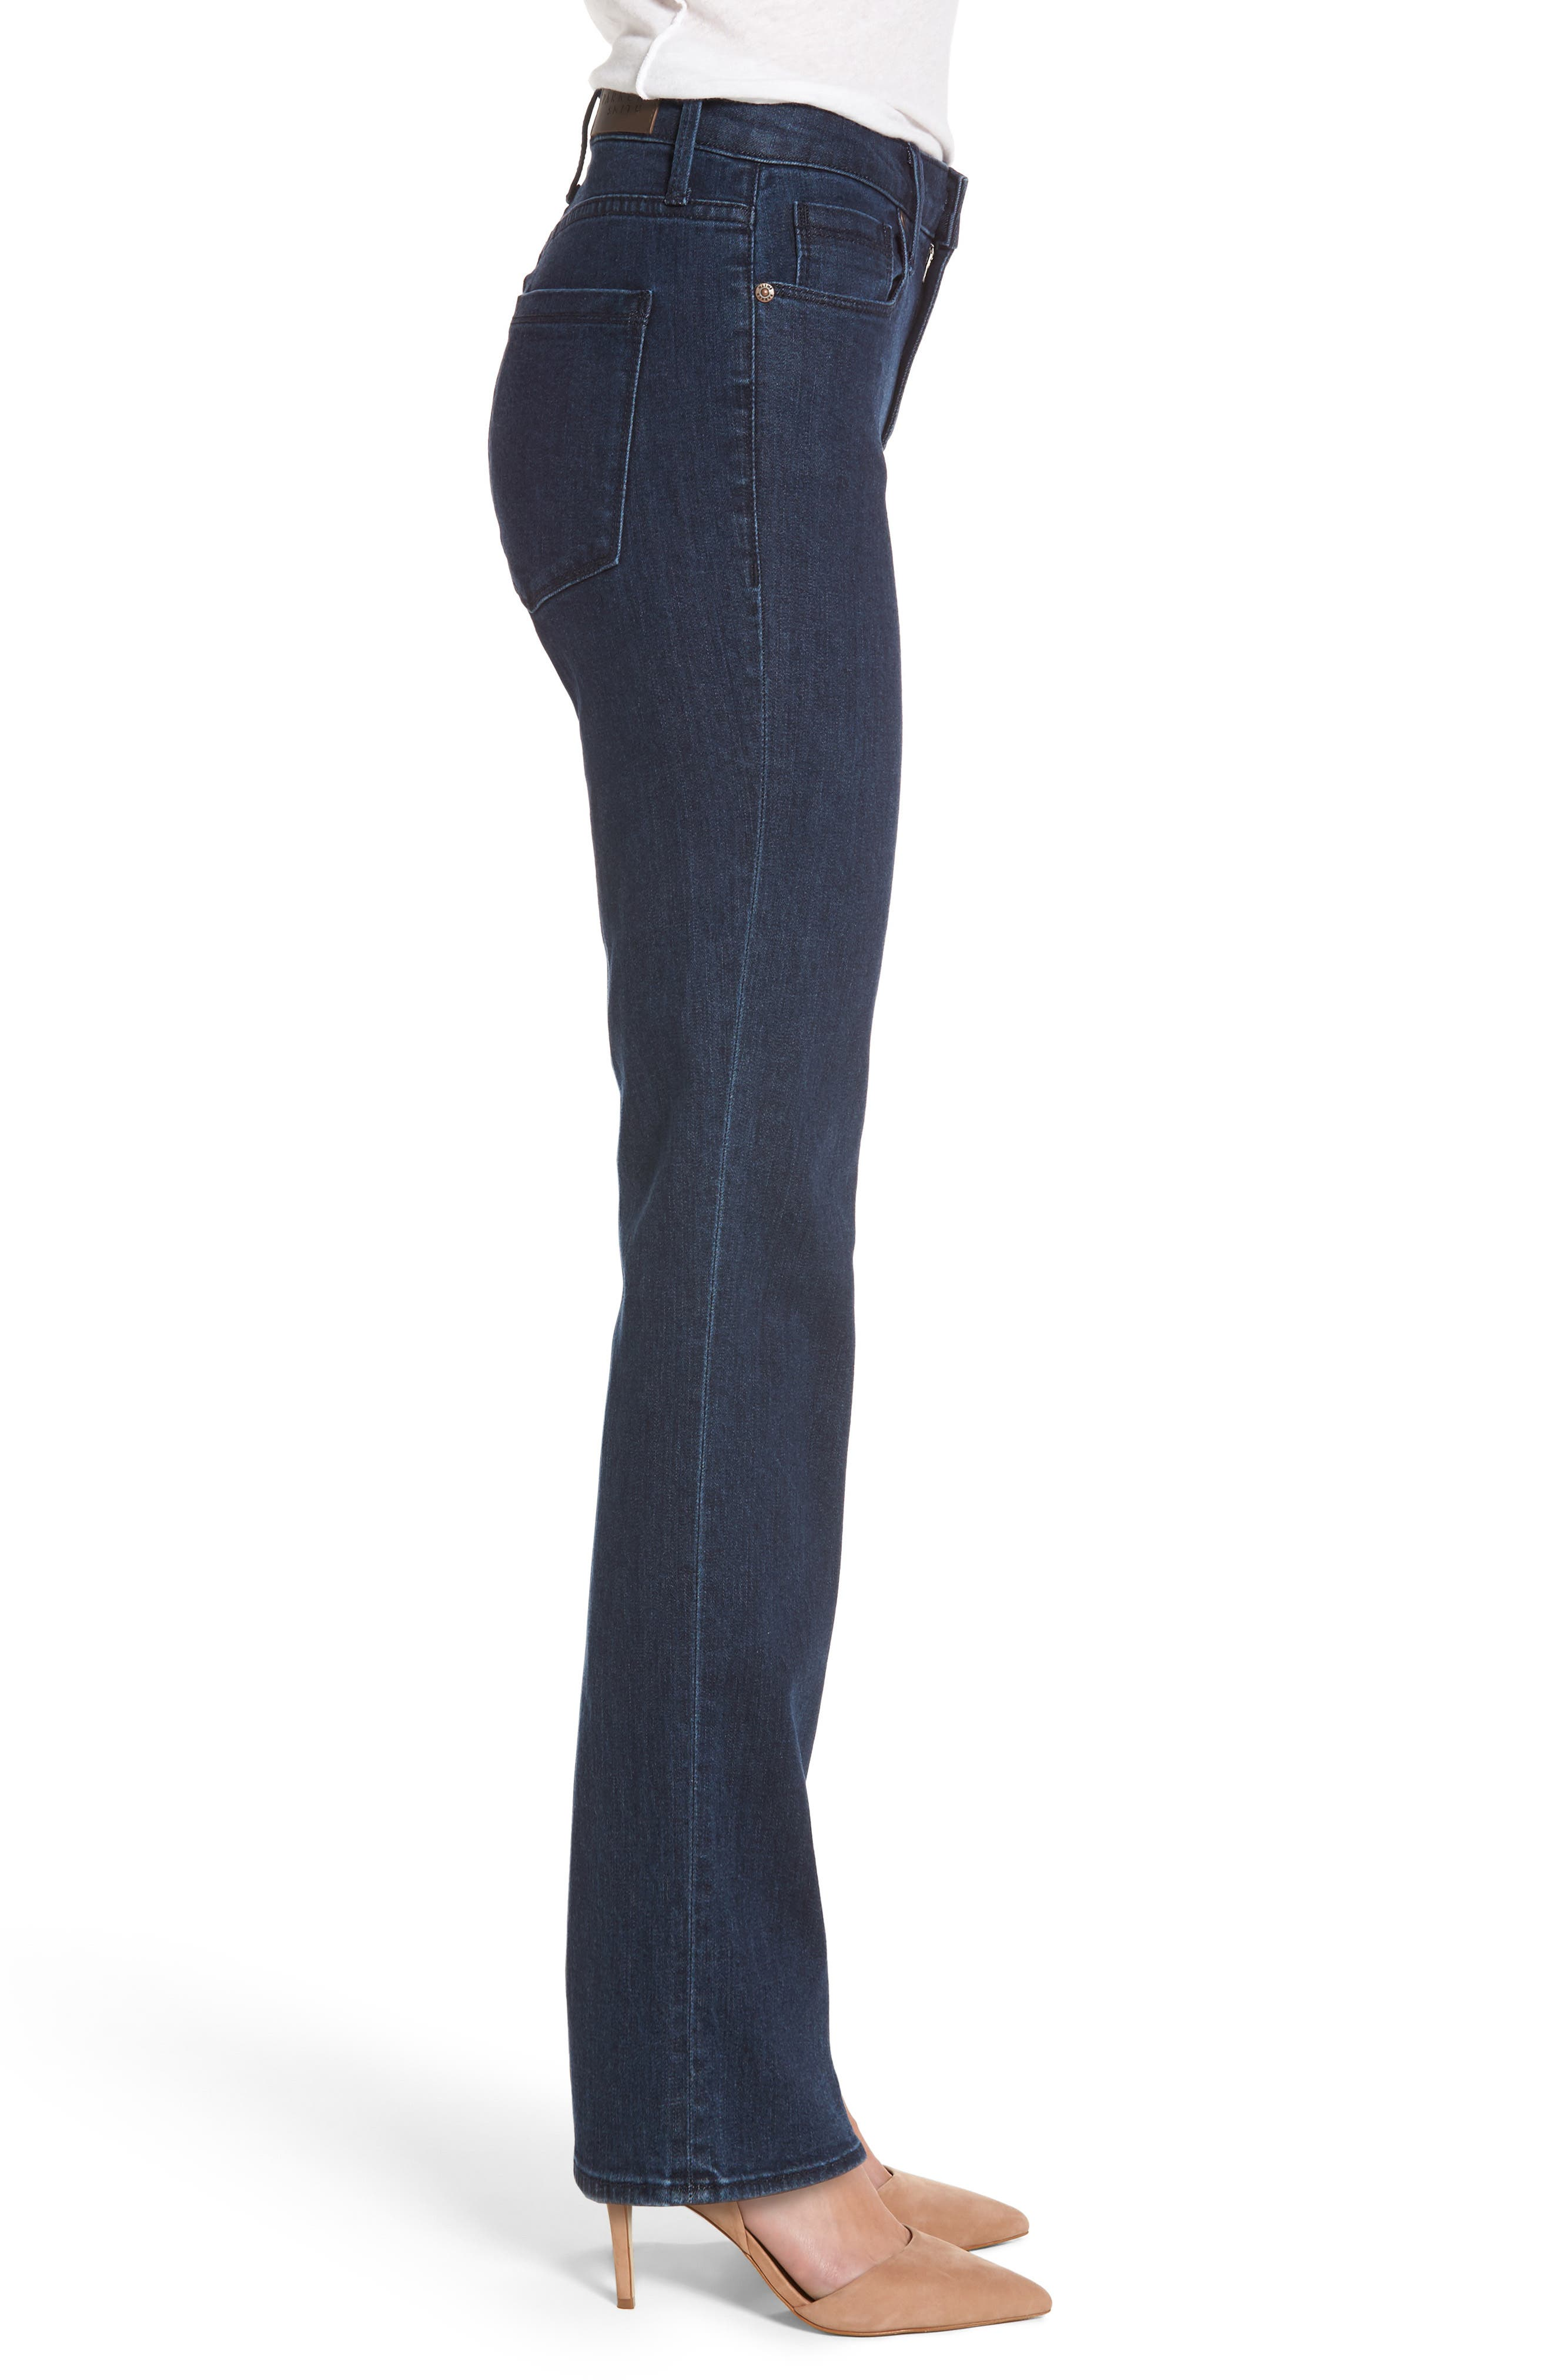 Alternate Image 3  - PARKER SMITH Bombshell Runaround Straight Leg Jeans (Baltic)